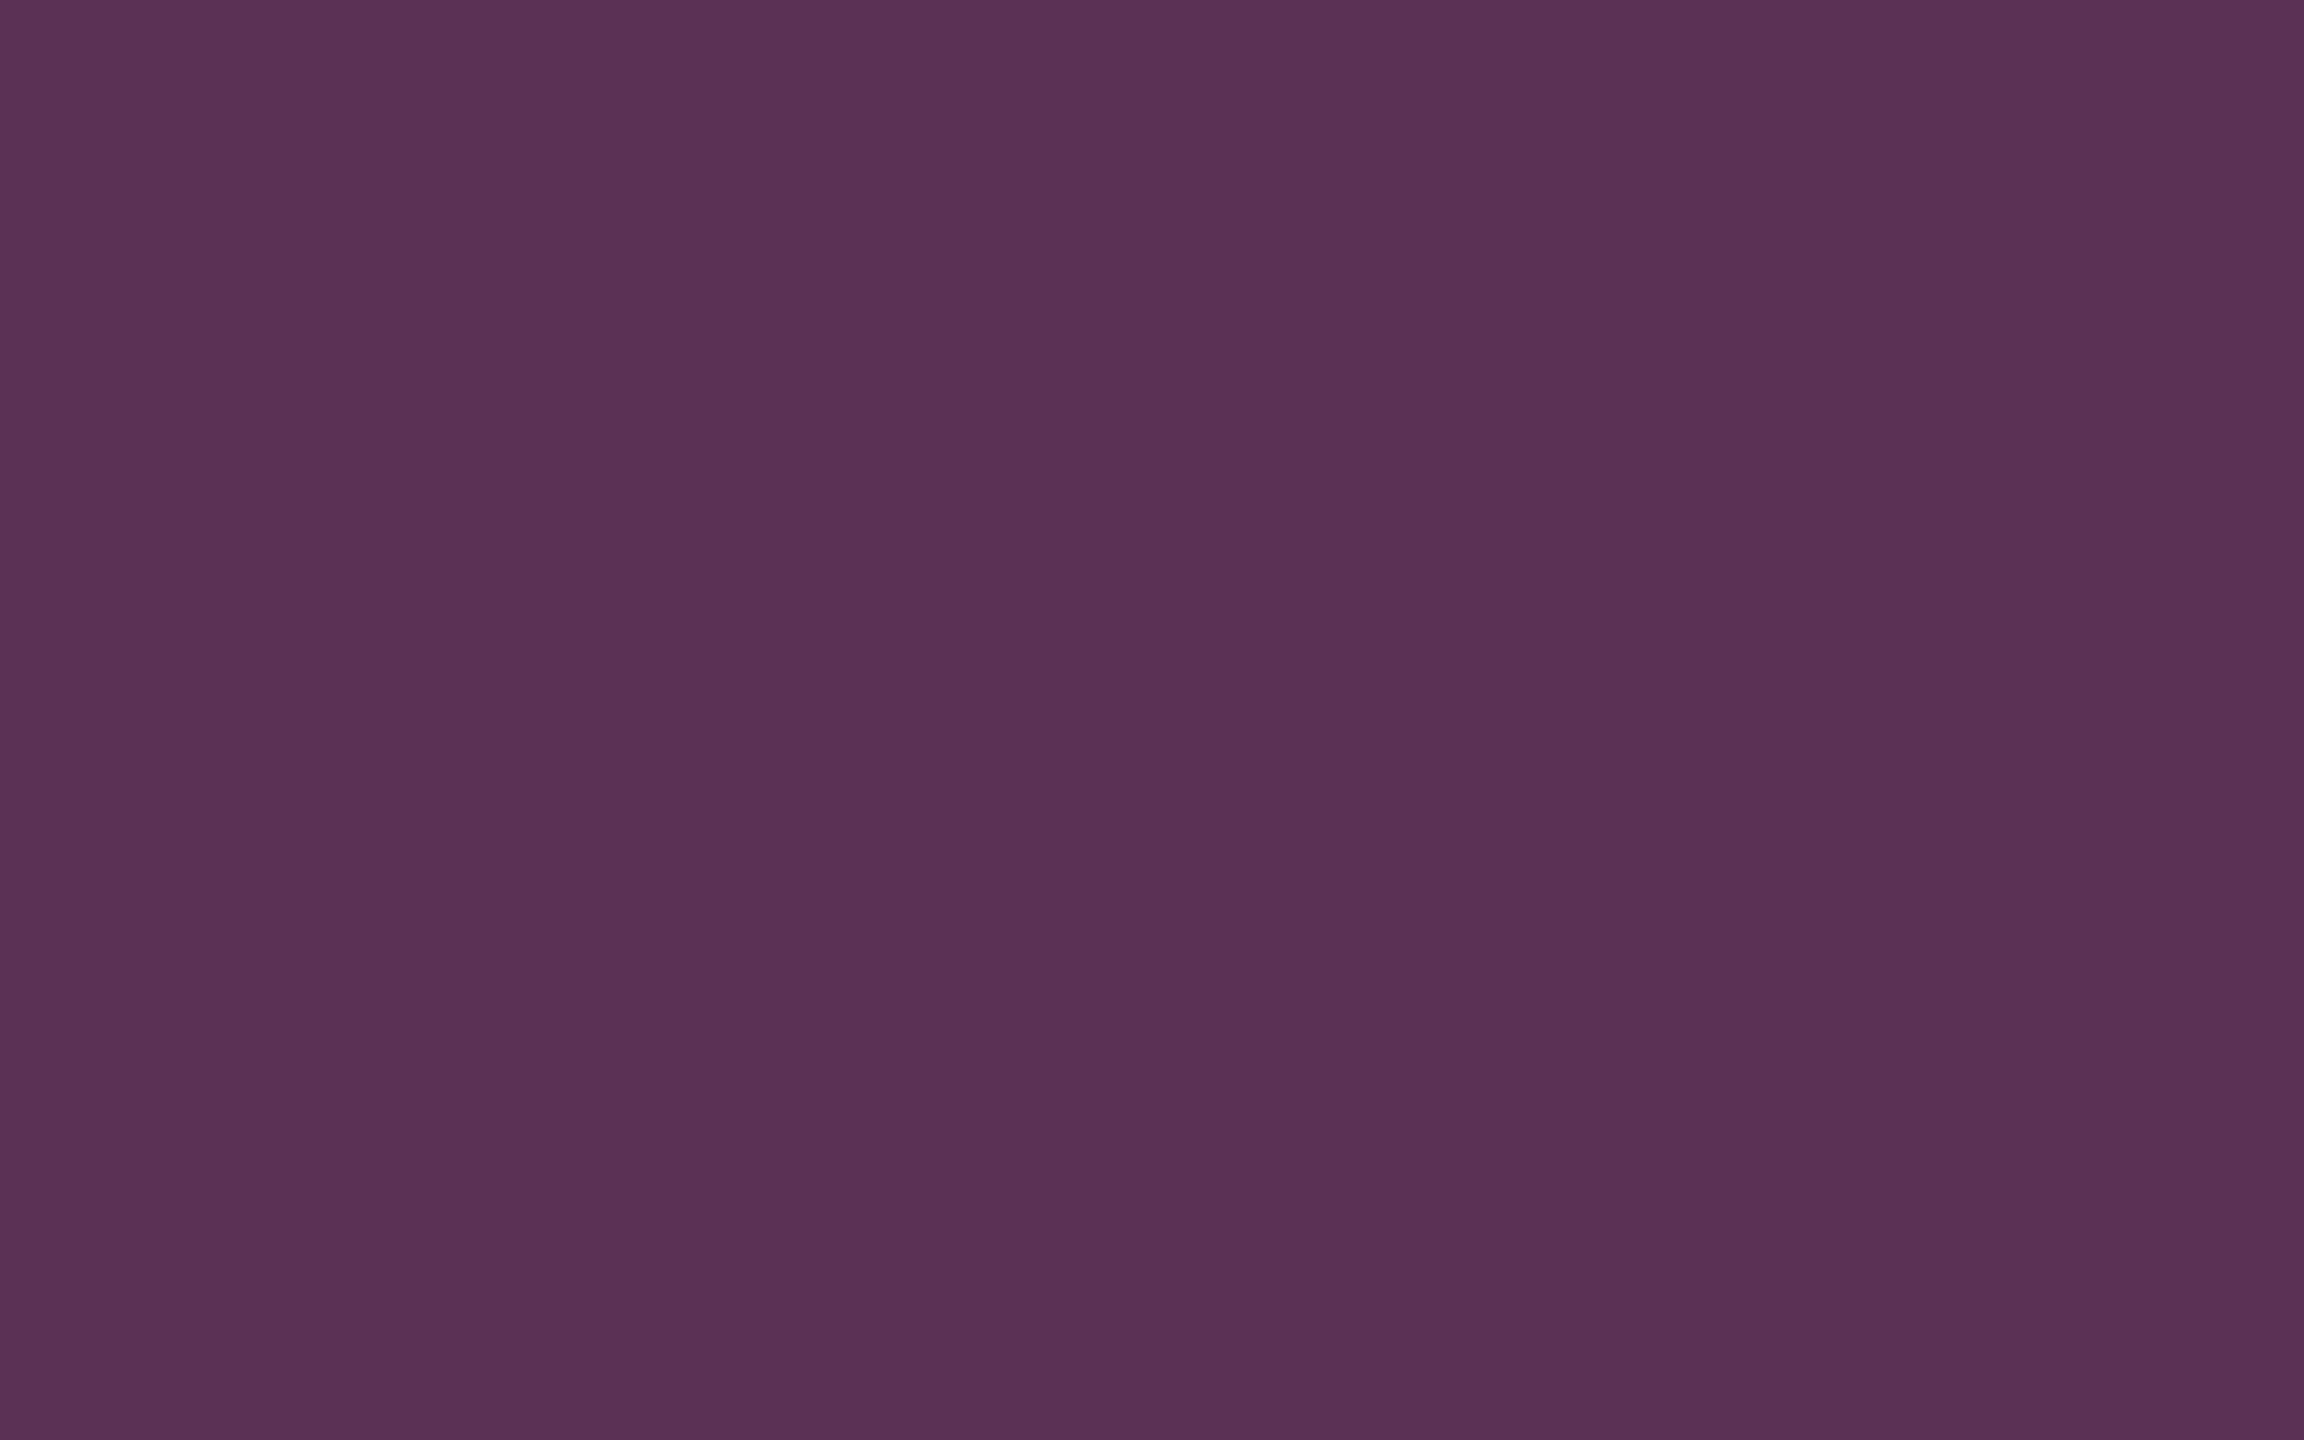 2304x1440 Japanese Violet Solid Color Background